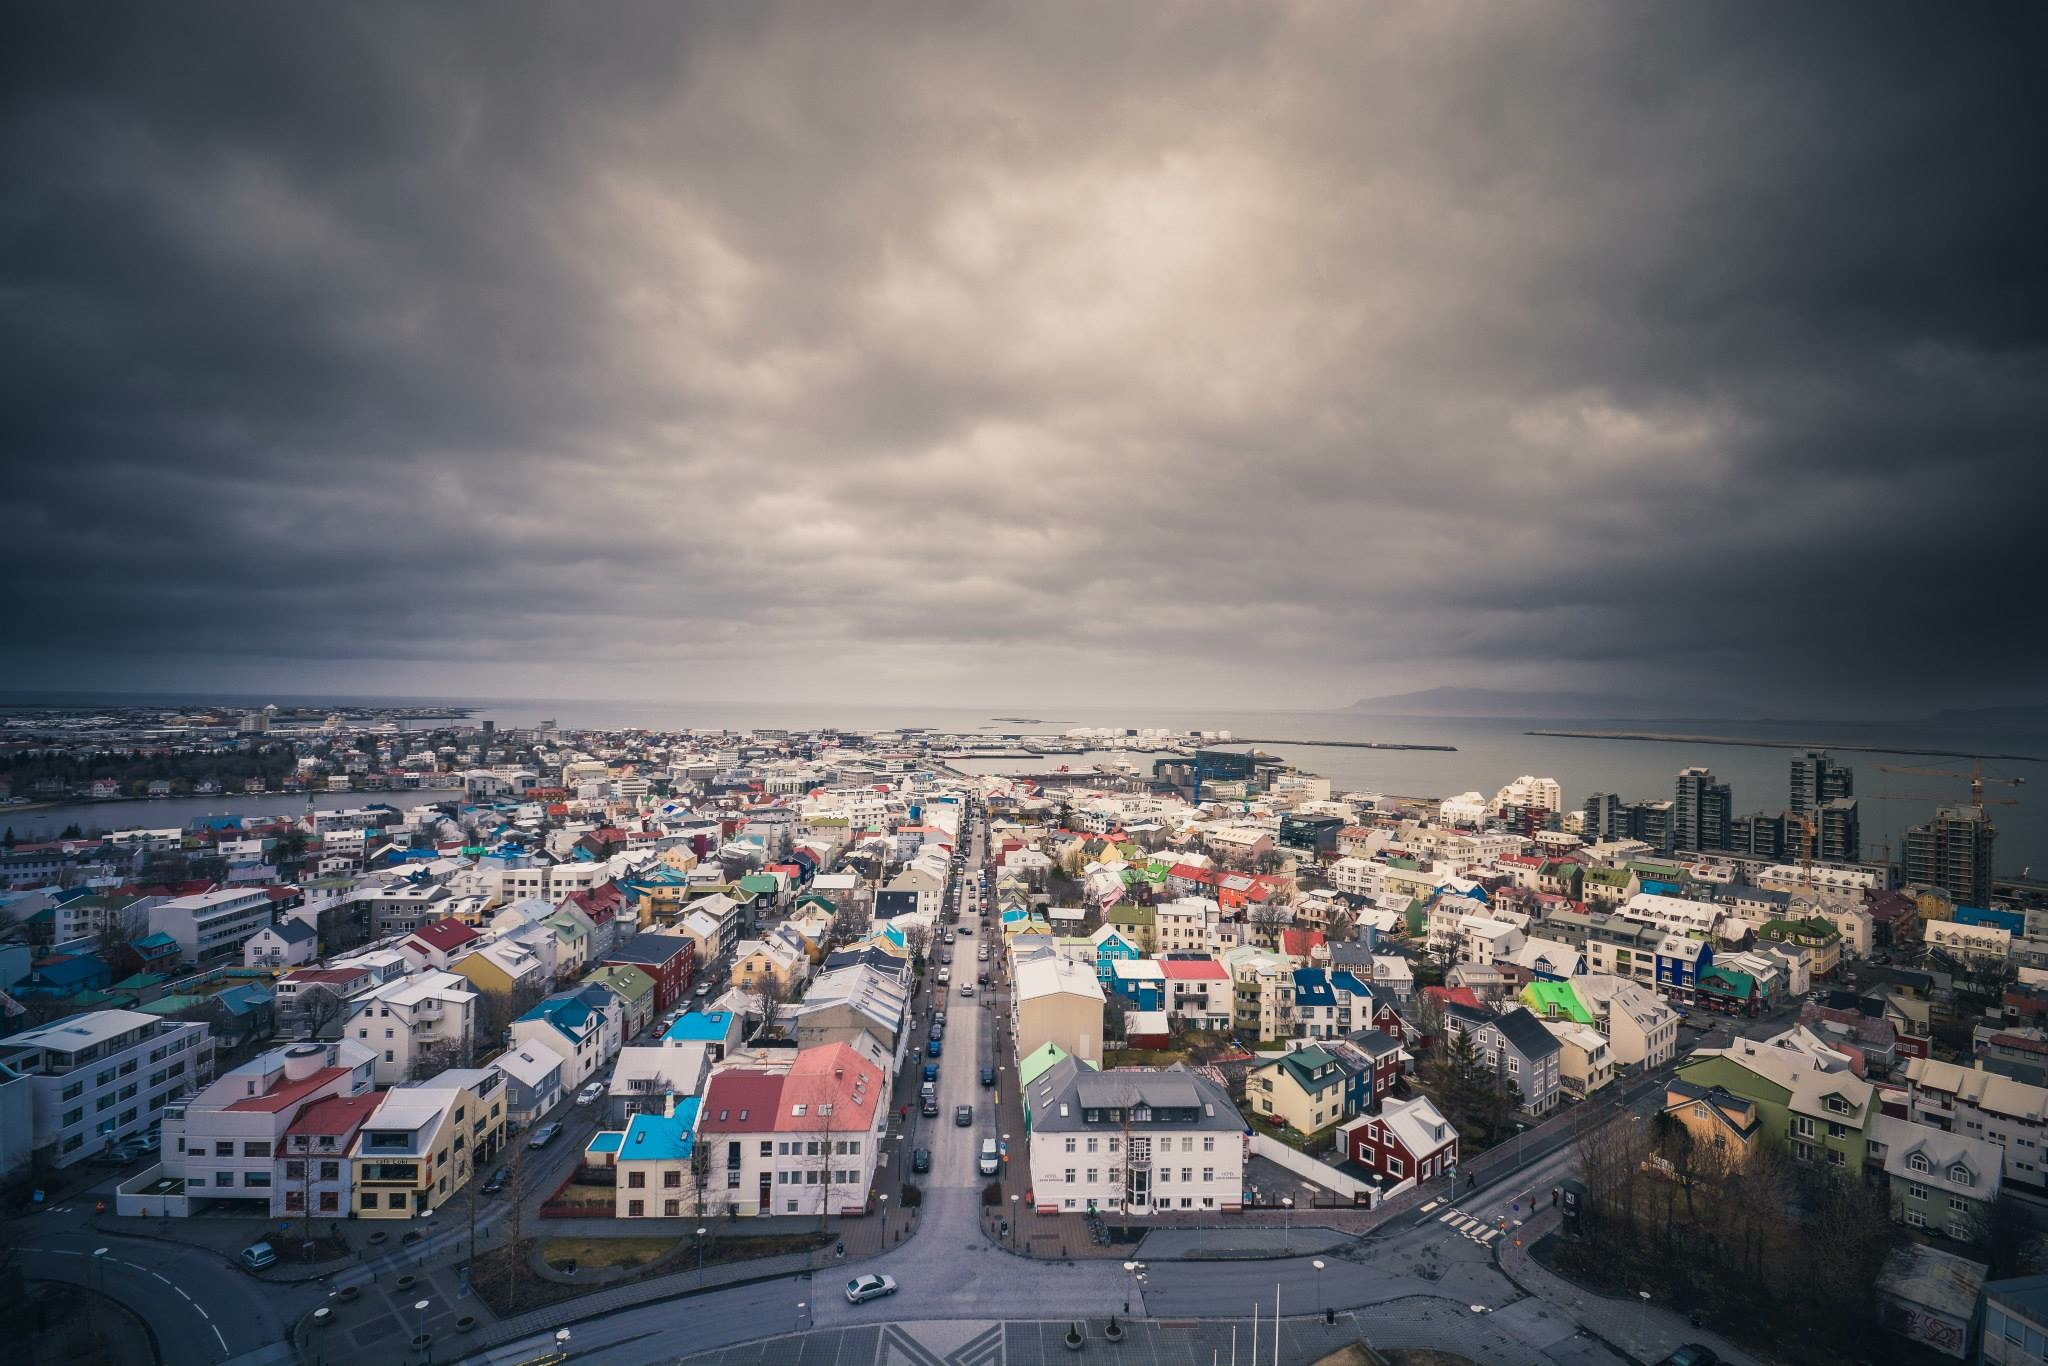 Iceland's capital city Reykjavík is a metropolitan of a miniature scale, renowned for its charm and friendly locals.